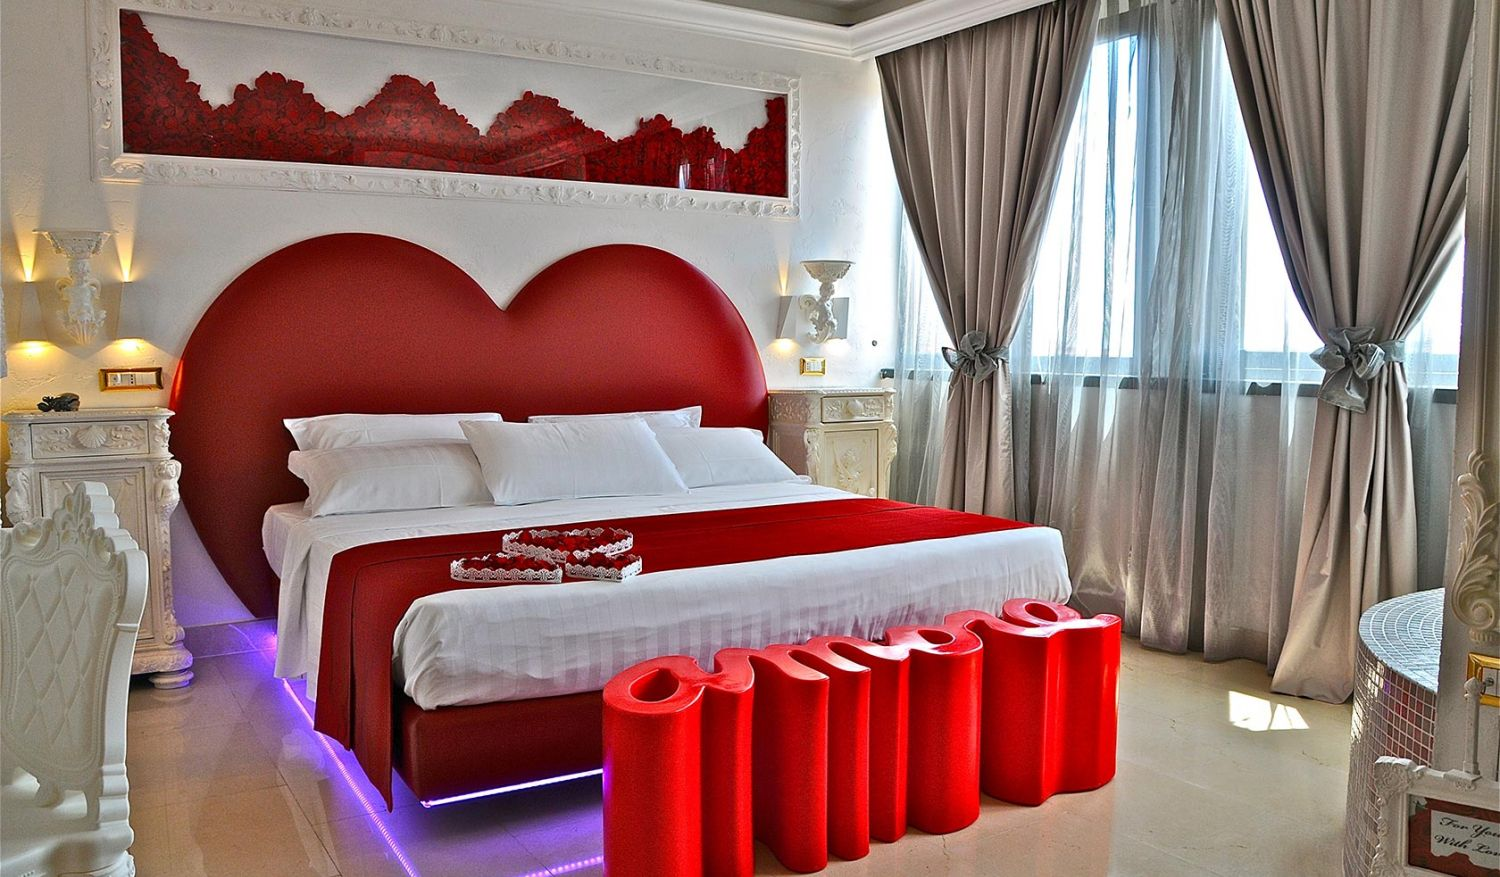 Ideal love room for a romantic holiday in Rome